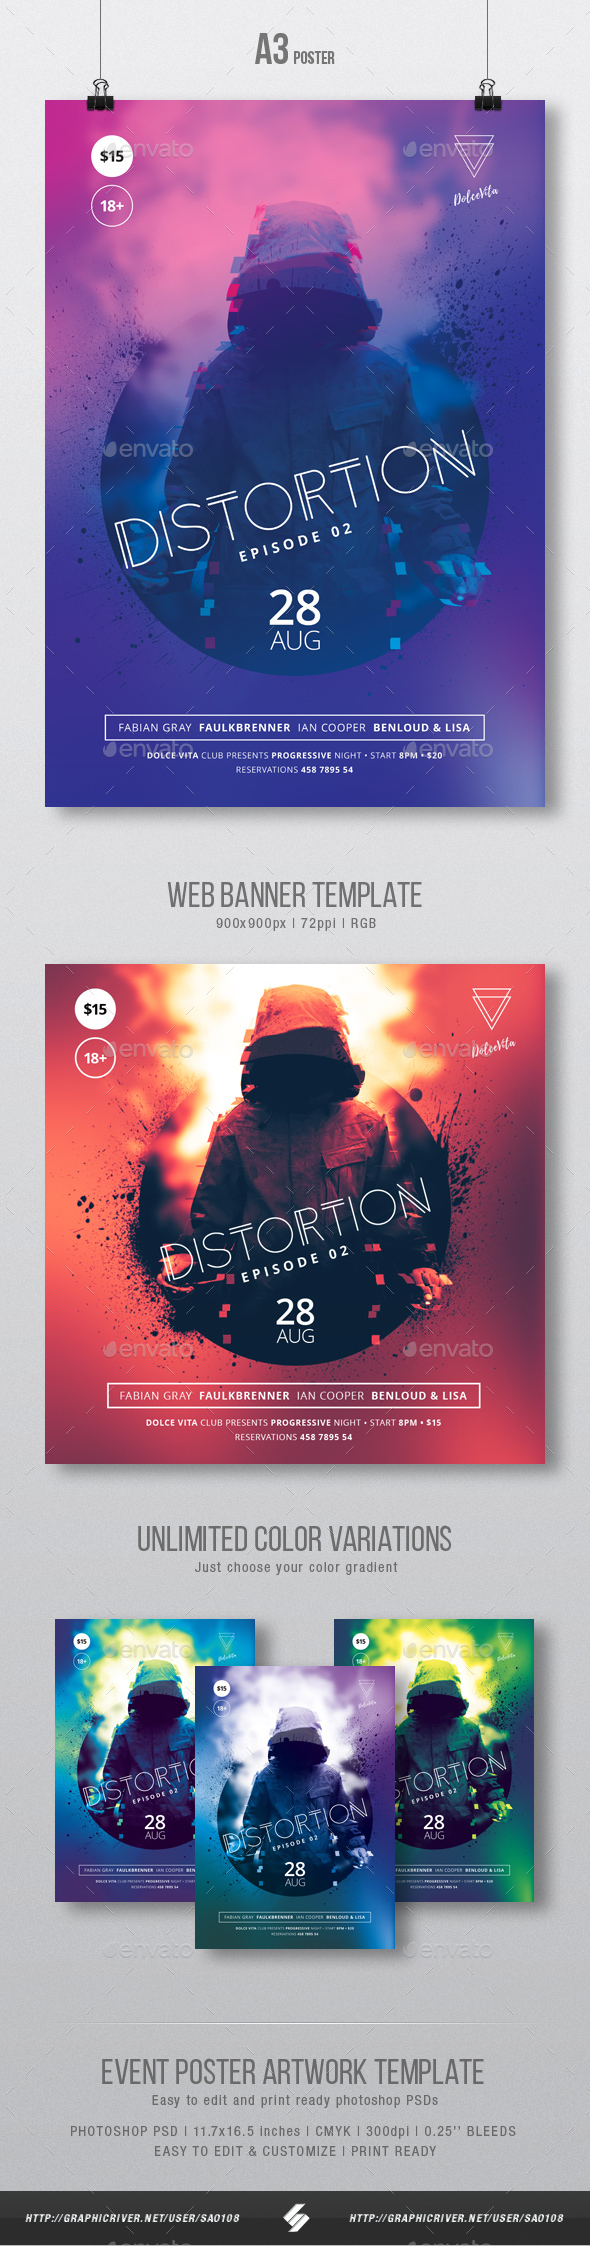 Distortion 2 - Underground Party Flyer / Poster Template A3 - Clubs & Parties Events